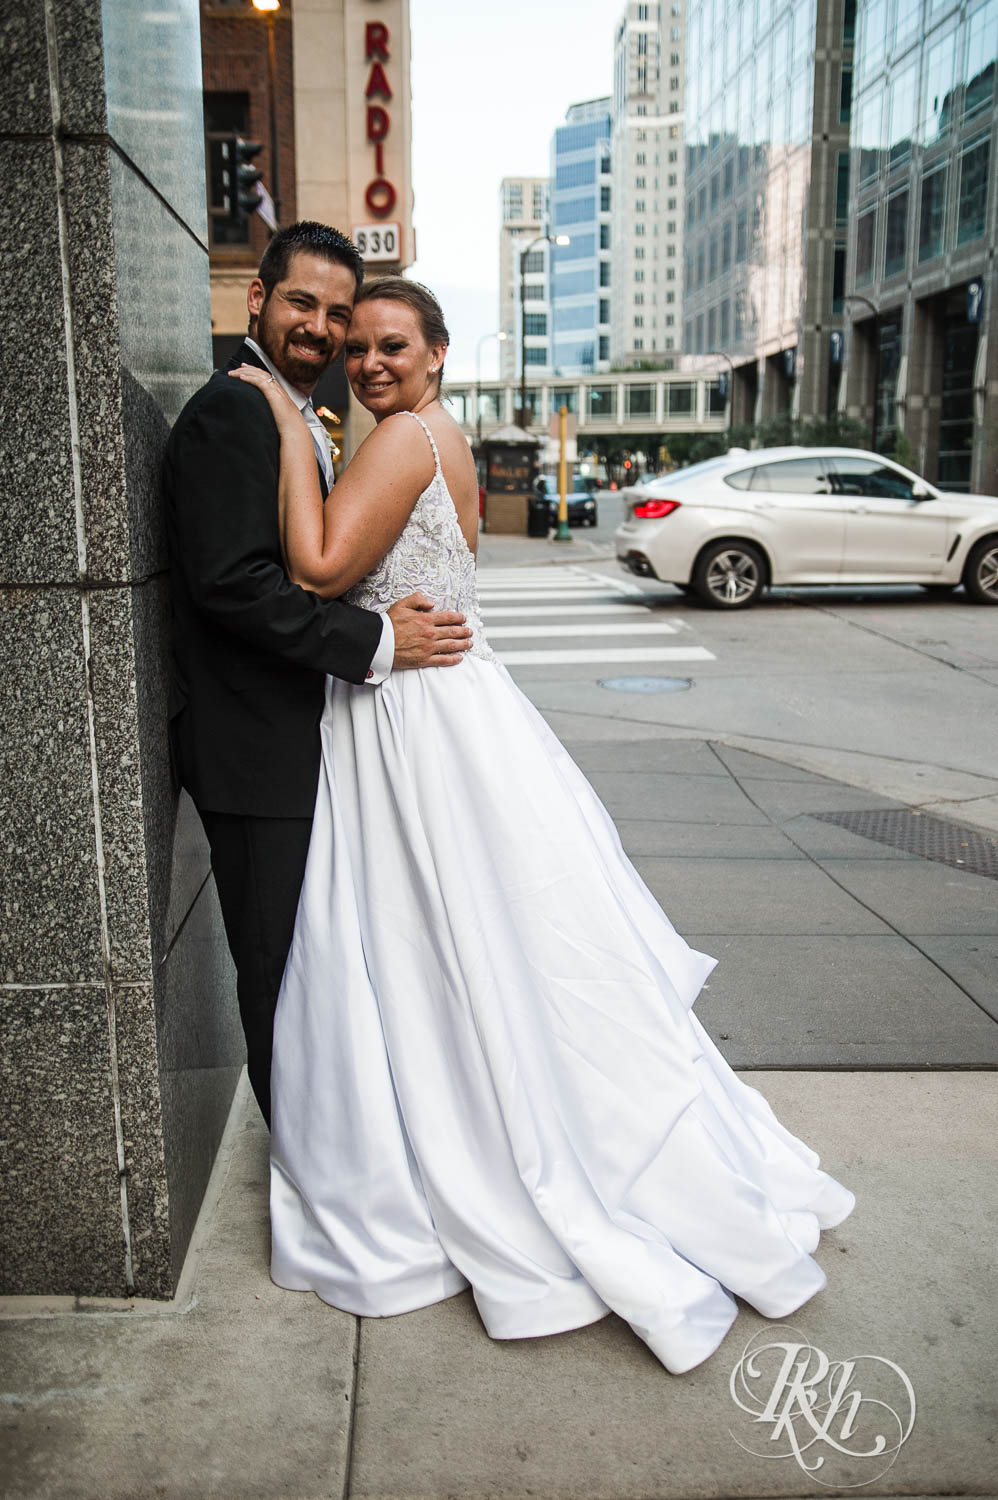 Kayla & Travis - Minnesota Wedding Photography - Crowne Plaza Minneapolis - RKH Images - Blog  (59 of 61).jpg